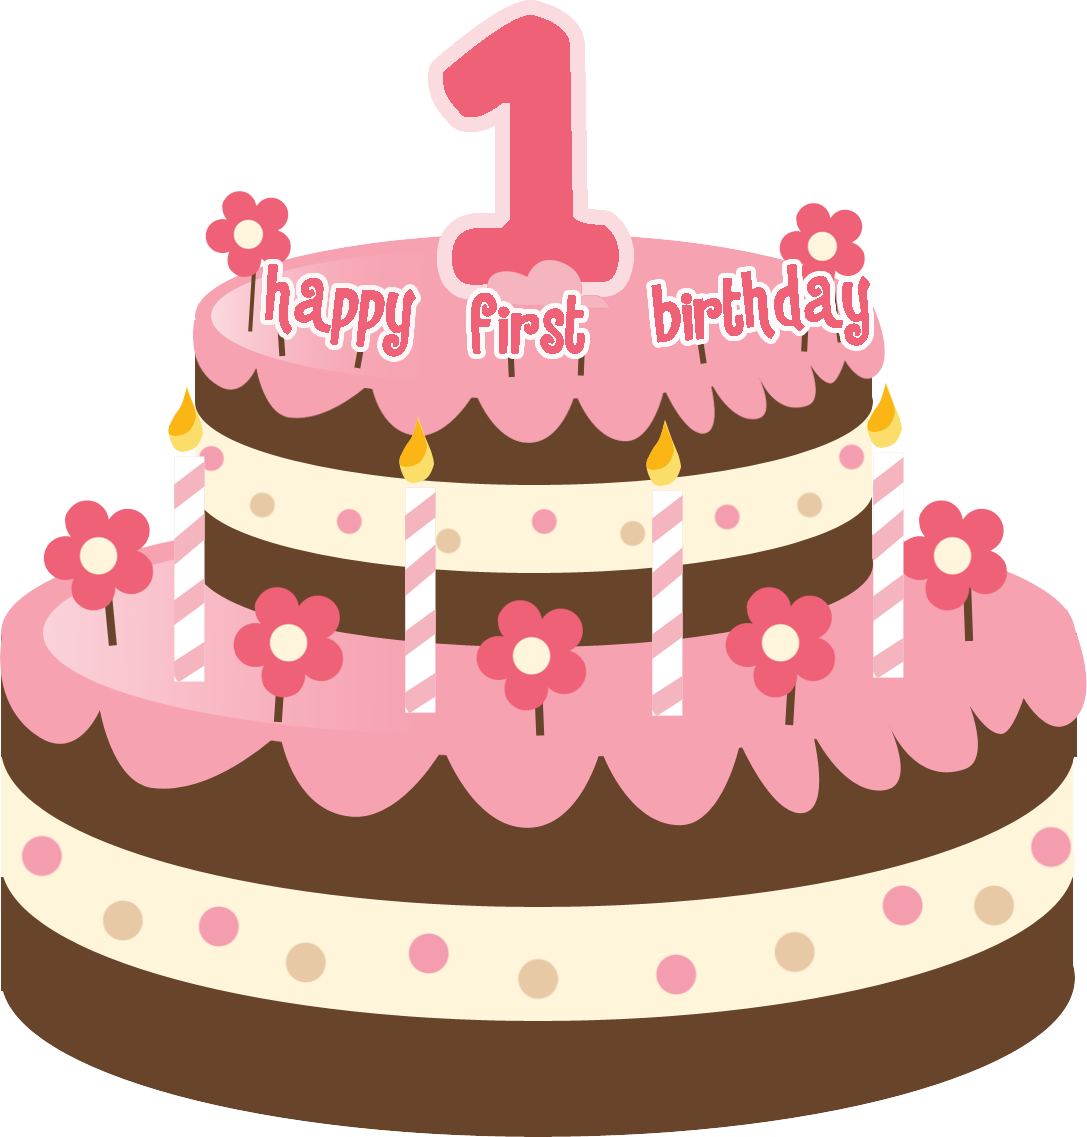 1st Birthday Cake Png Images For gt 1st Birthday Cake